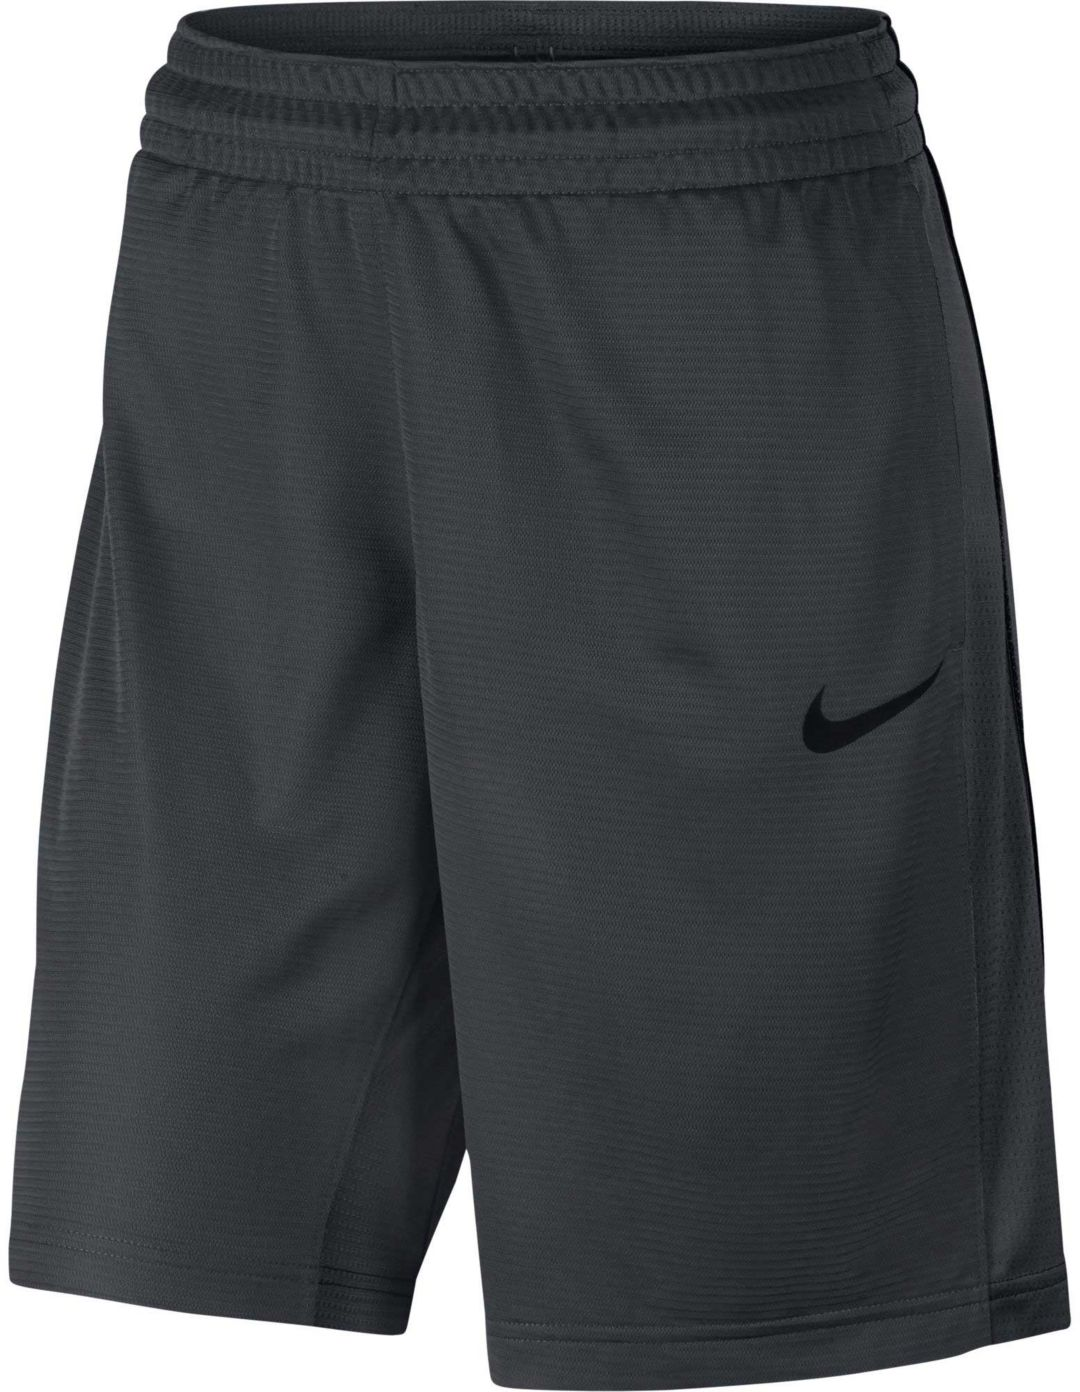 18cc8ae53a0d8 Nike Women's 10'' Dry Essential Basketball Shorts | DICK'S Sporting ...